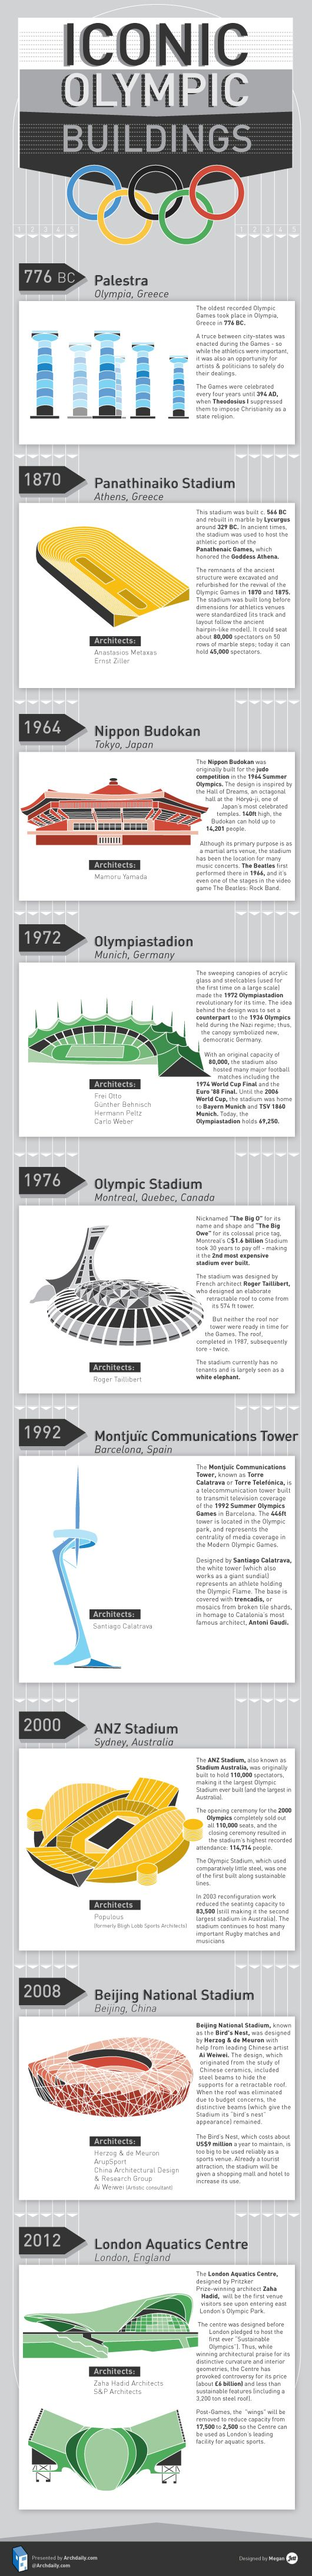 Infographic: Iconic Olympic Buildings #olympics #architecture